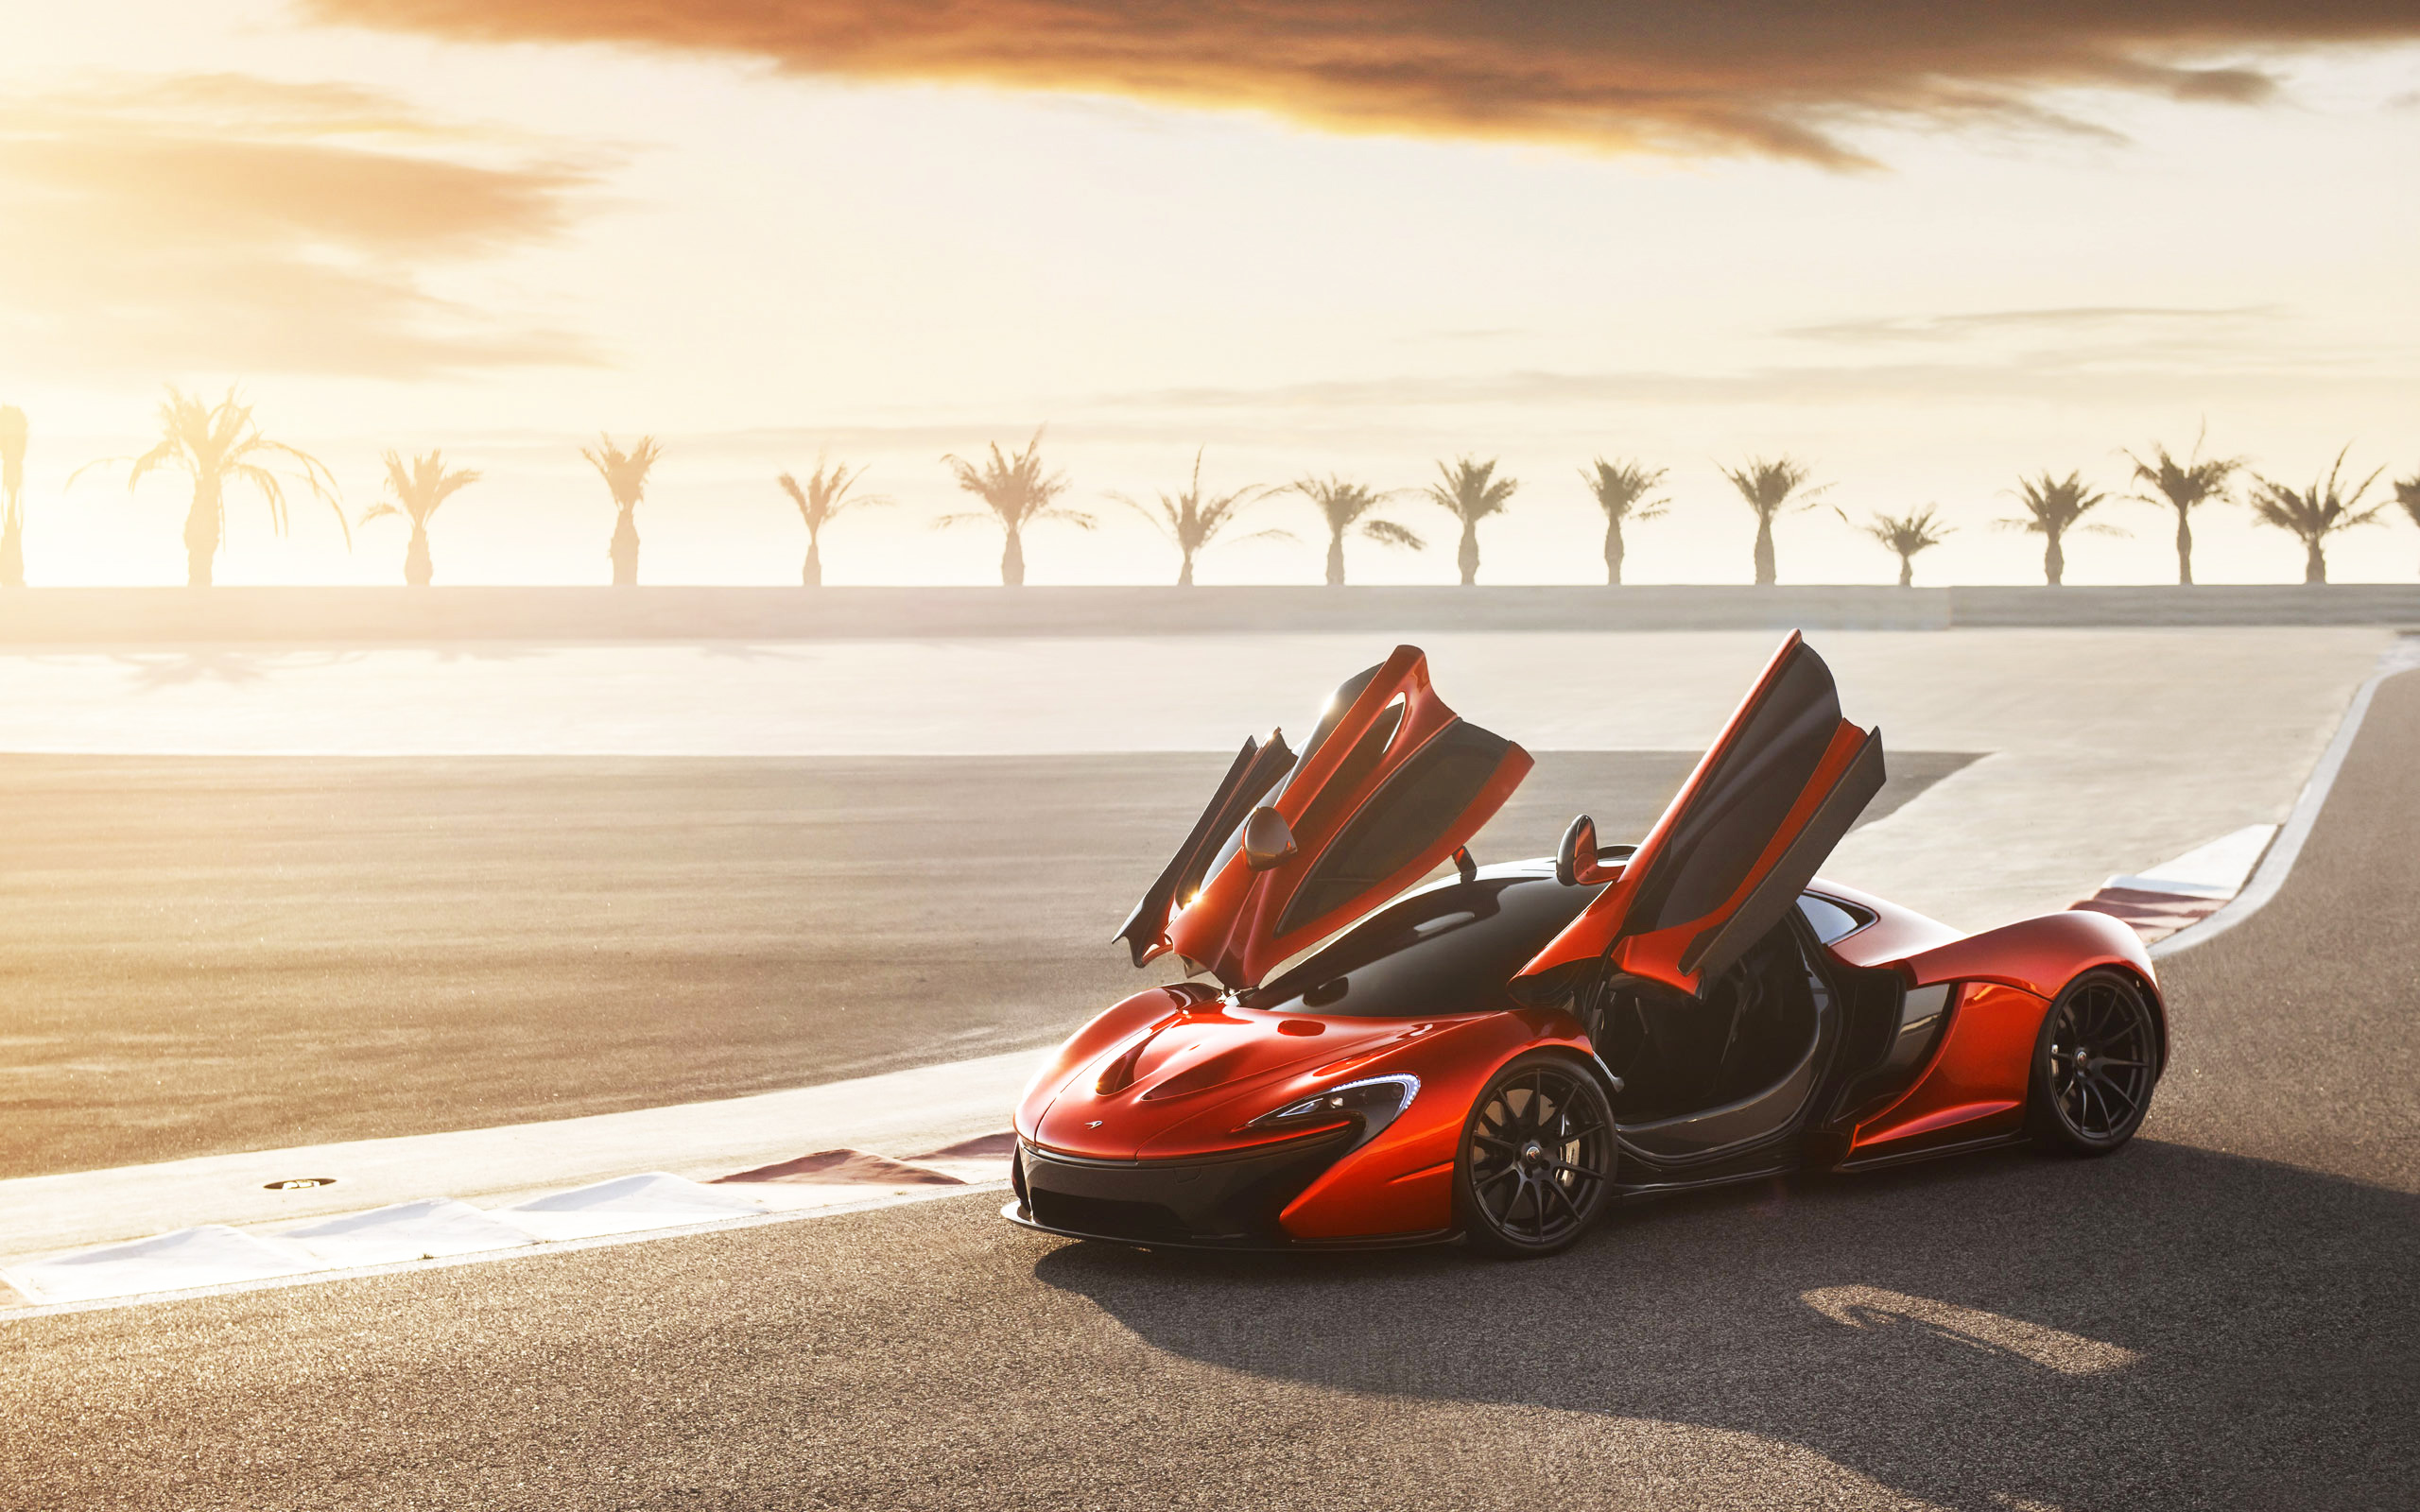 Download McLaren P1 Wallpaper HD 2763 1920x1080 px High Resolution